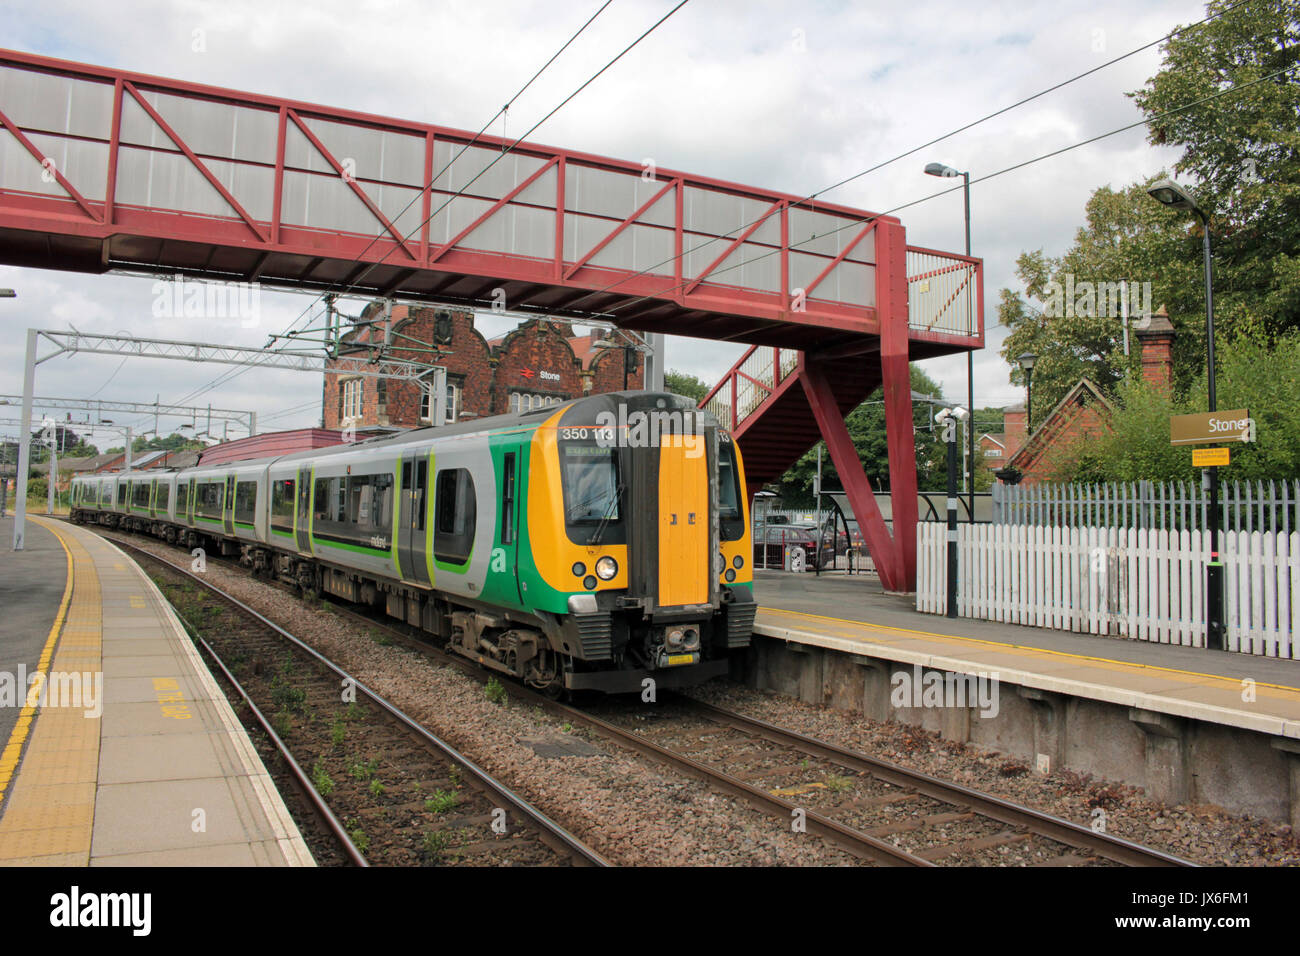 Cw 4052 350113 LM 14.02 Crewe to Euston at Stone 14.8.17. London Midland electric multiple unit no 350 113 arrives Stock Photo